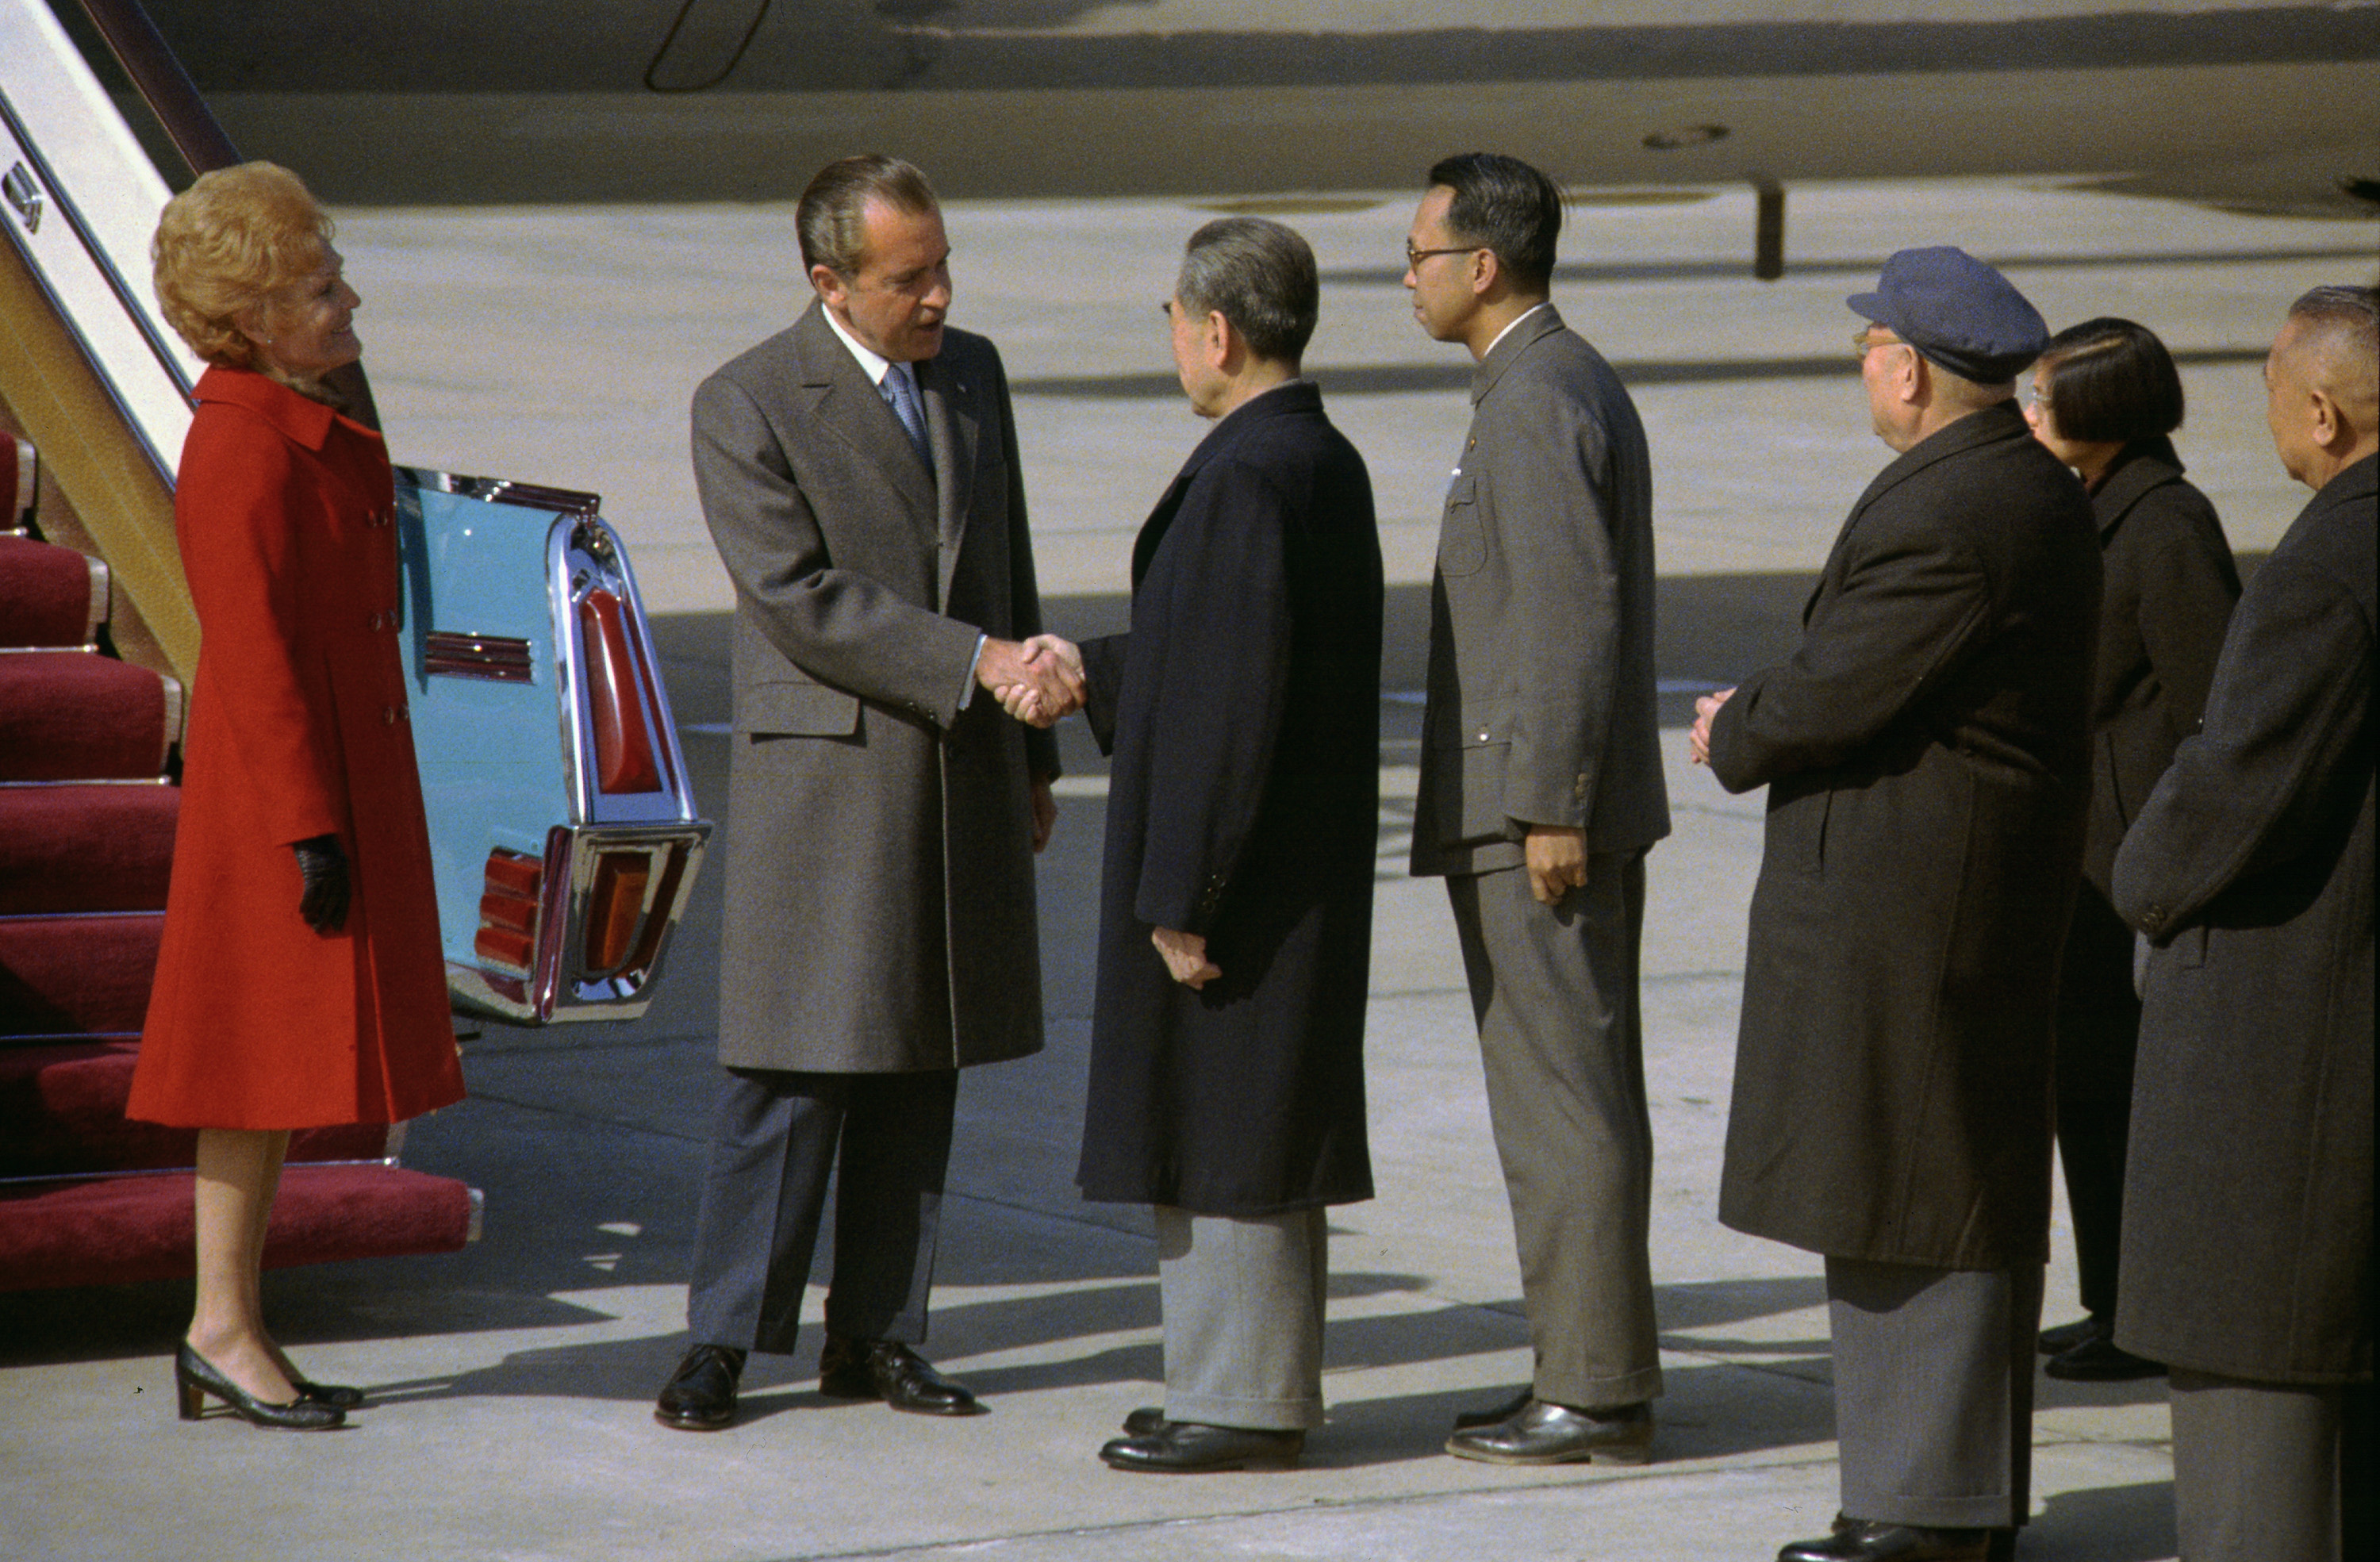 Nixon shakes hands with Chou En-lai